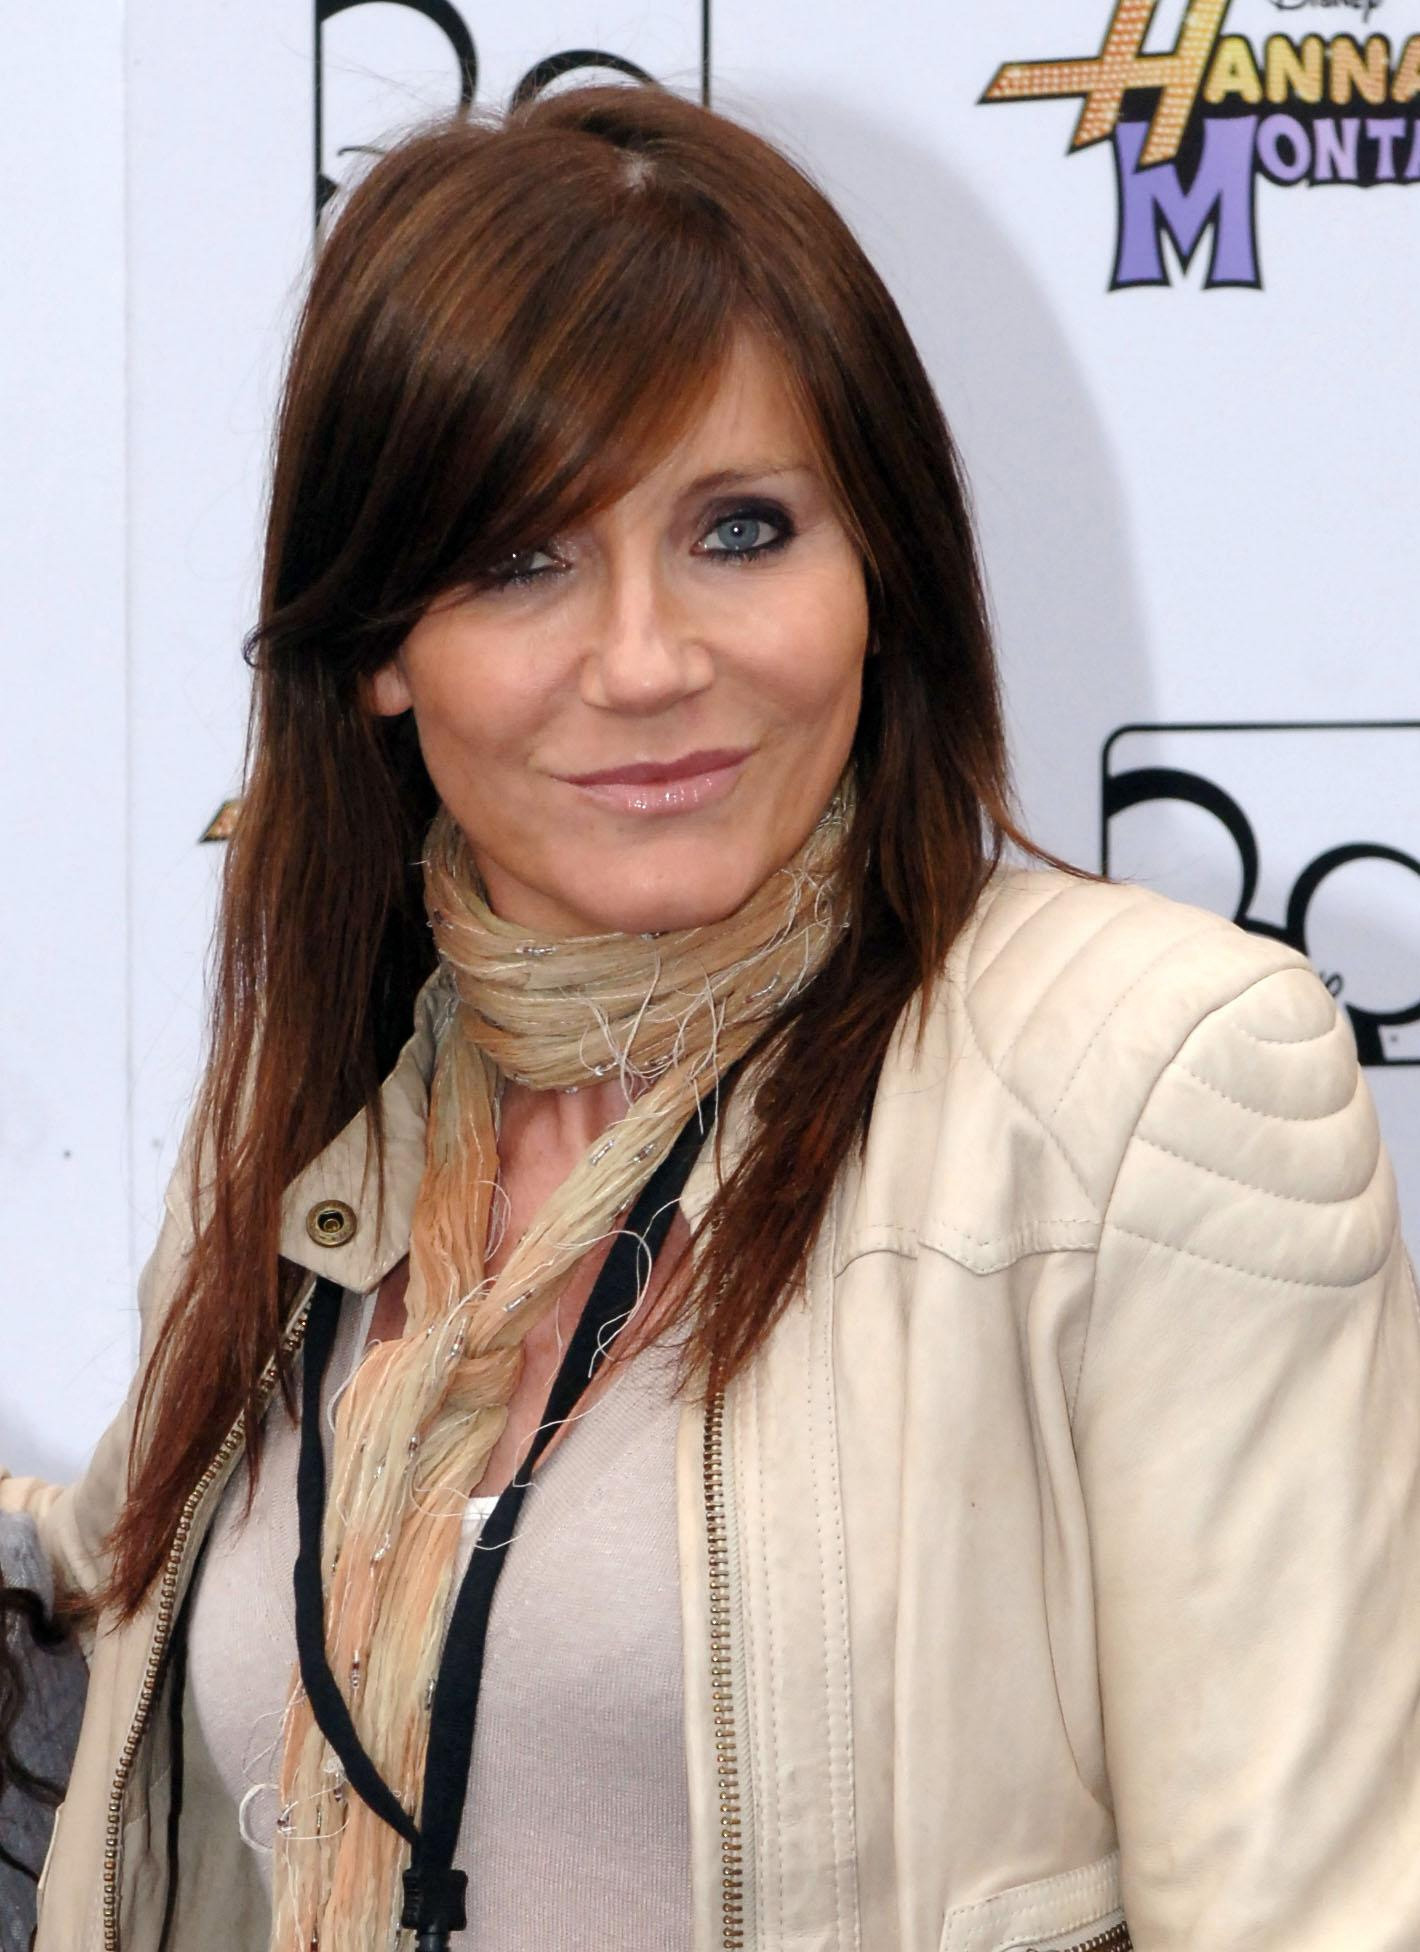 Michelle Collins to play 'X Factor' judge